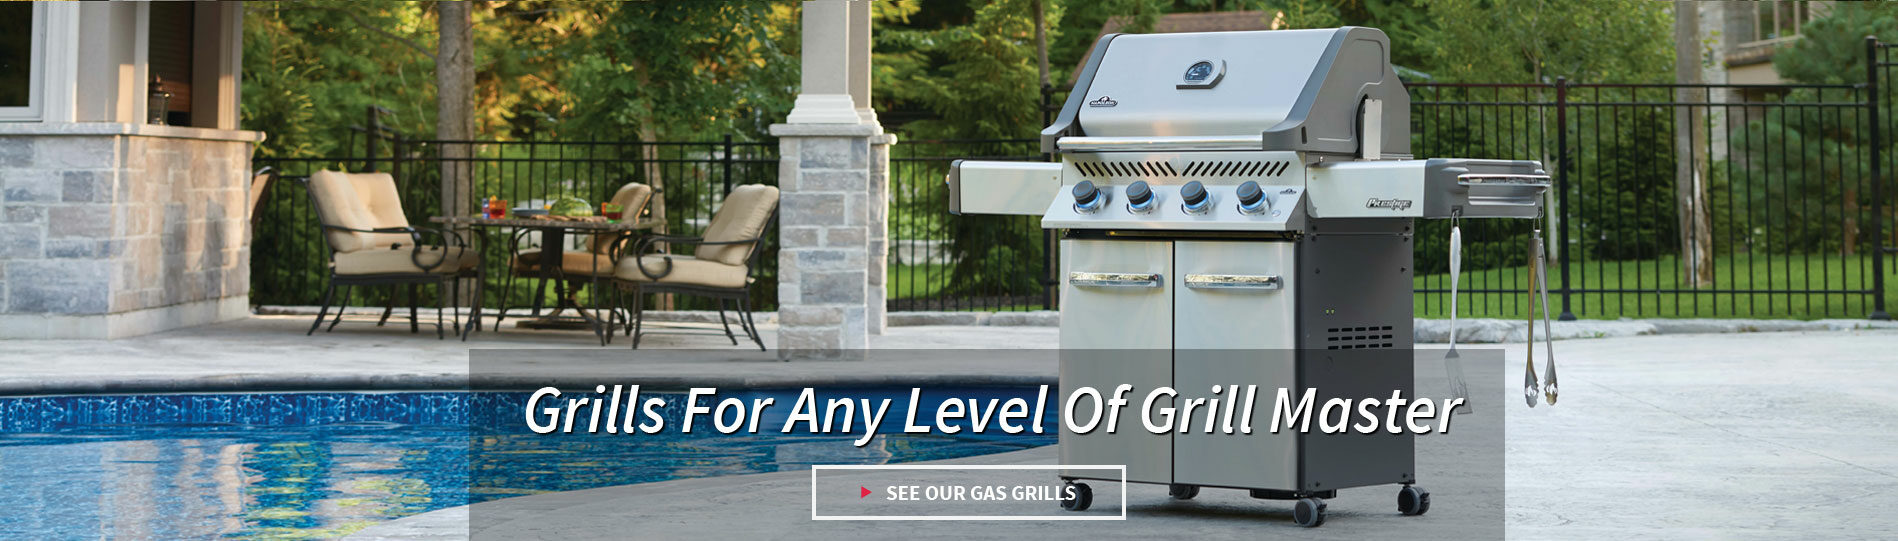 Grills for any level of grillmaster